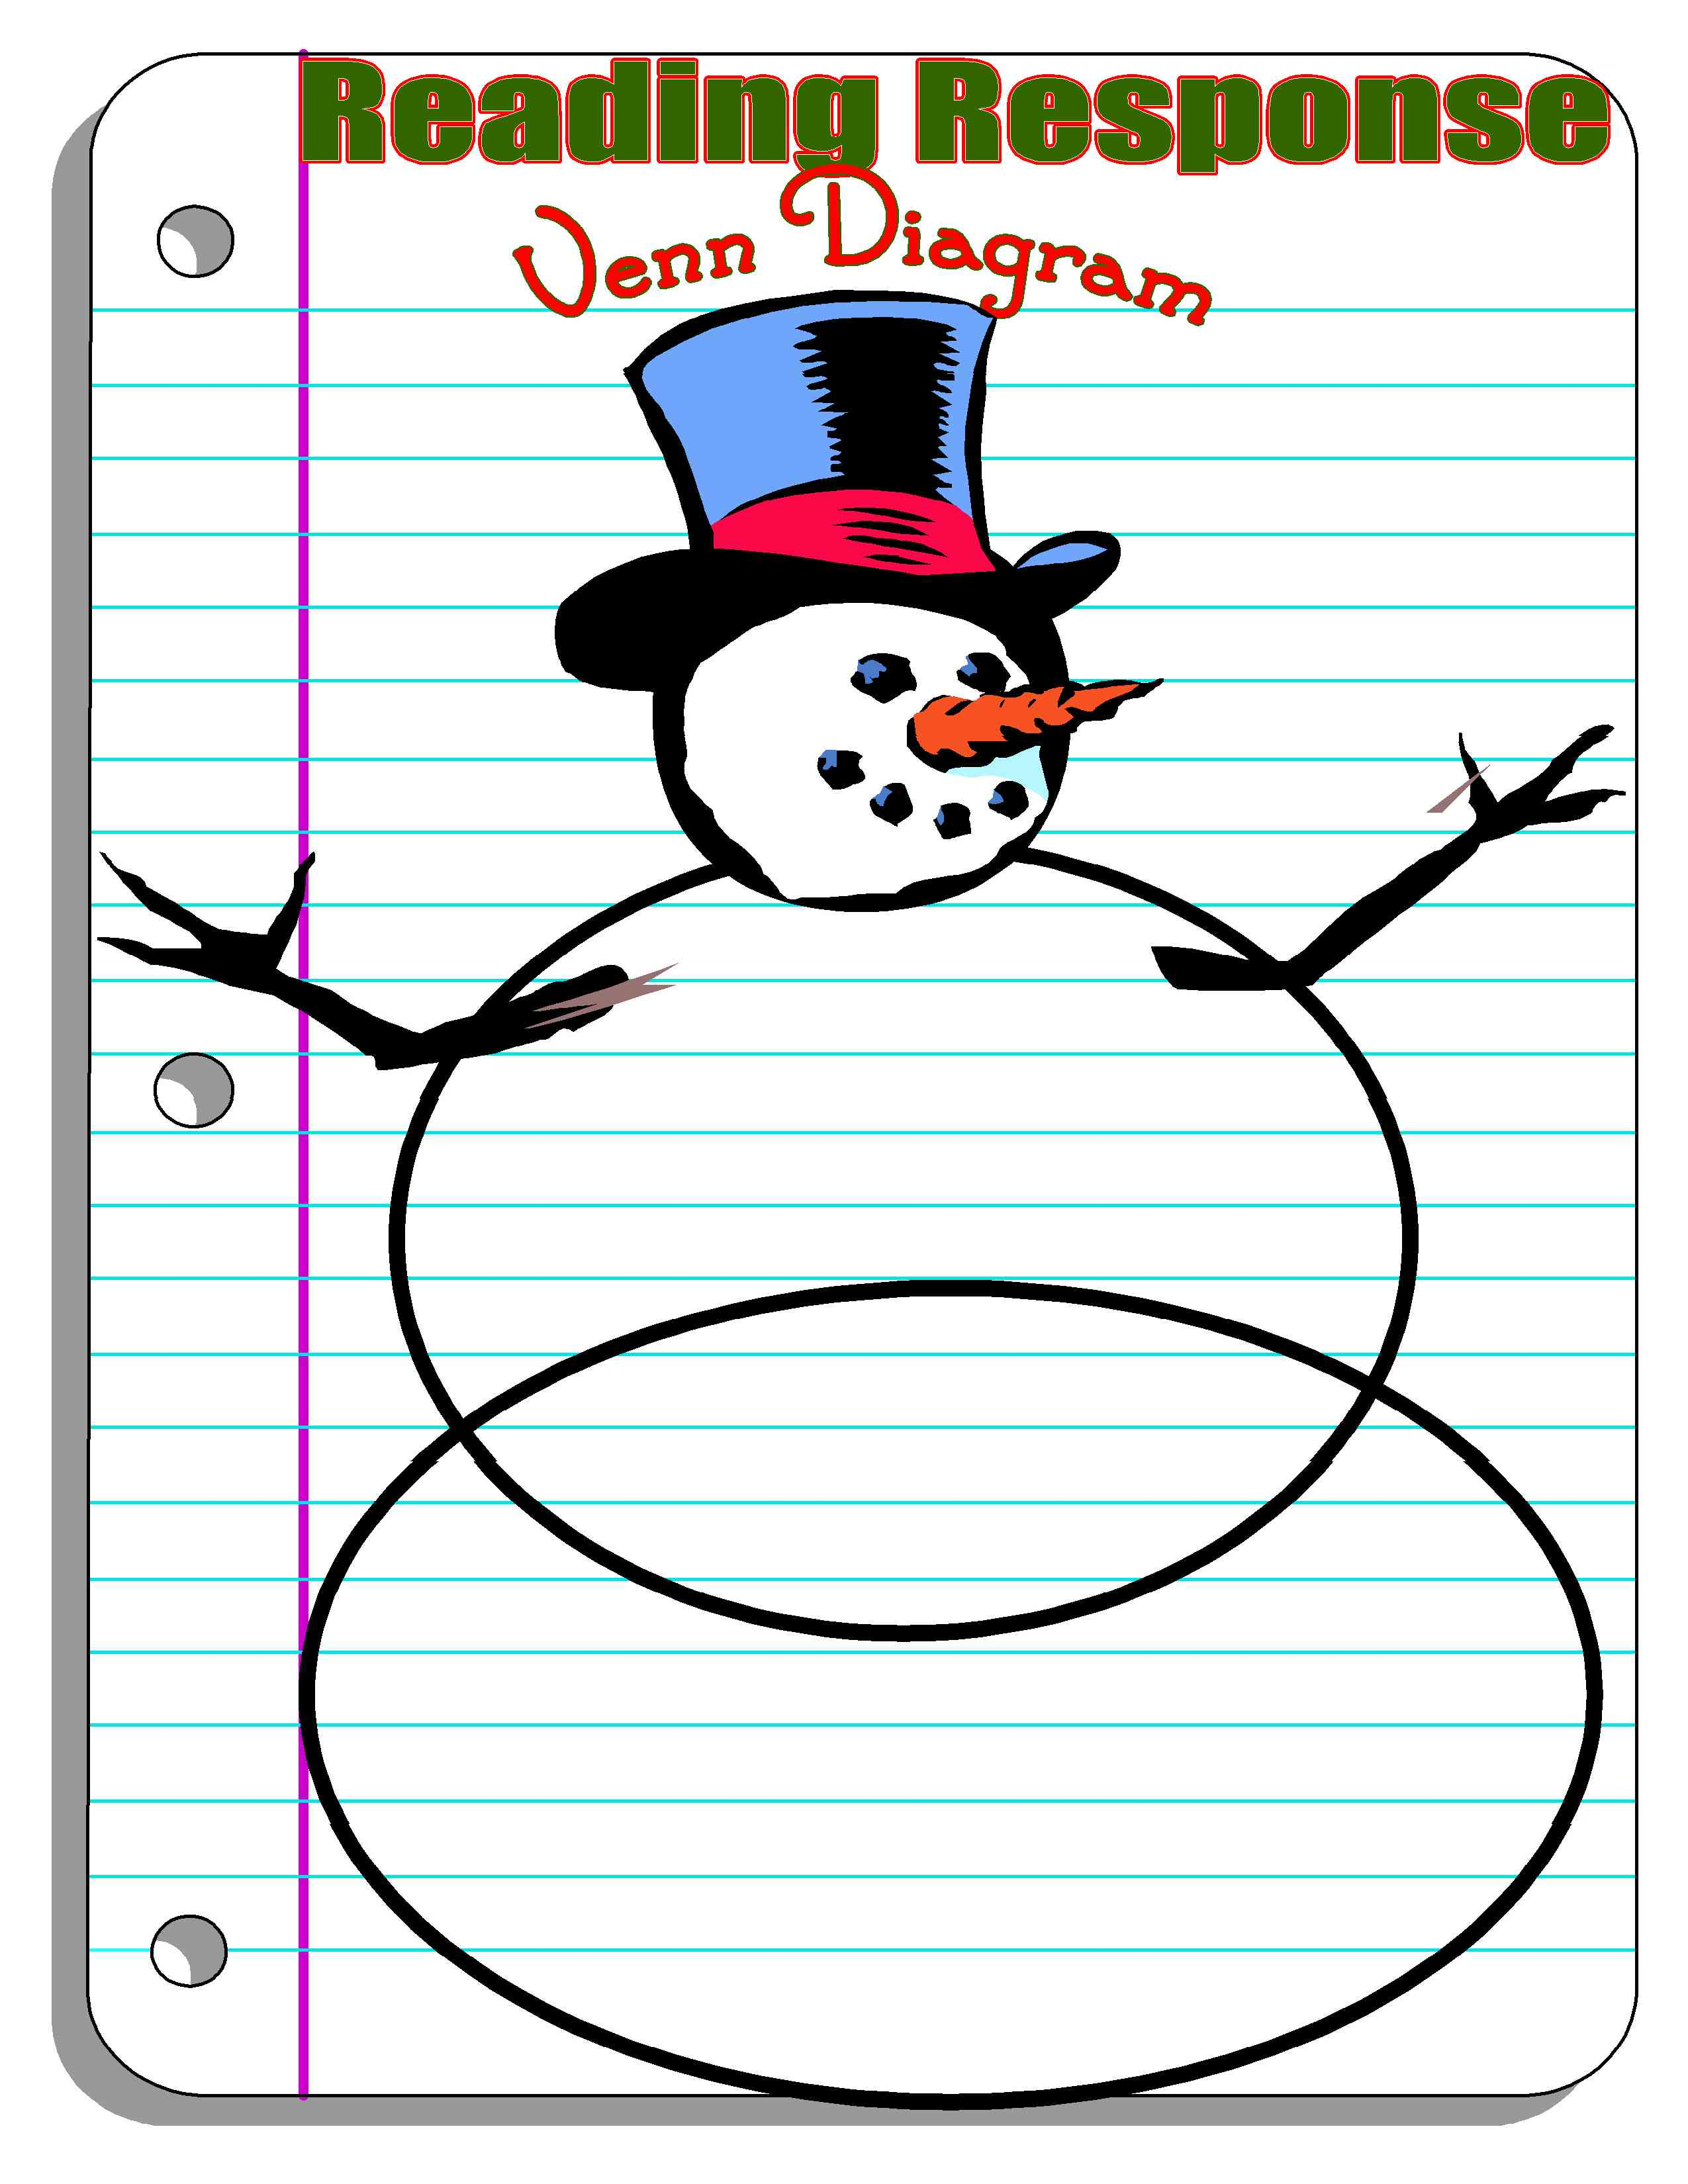 Worksheet Snowman Reading get crafty with your common core reading this holiday season snowman venn diagram